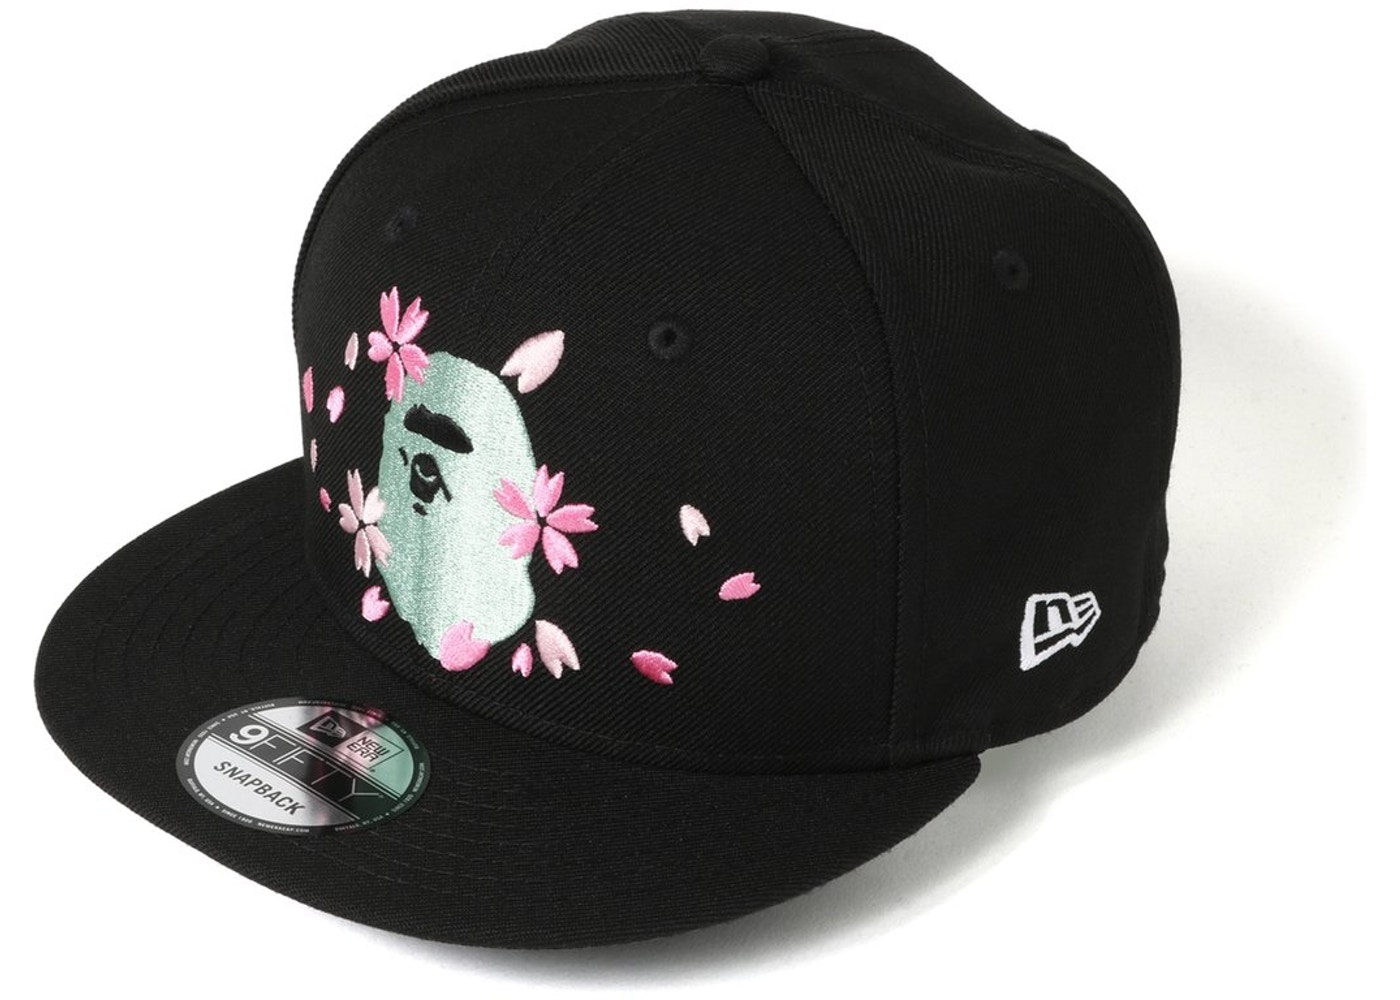 7cf437b293e7 Streetwear - Bape Headwear - Average Sale Price